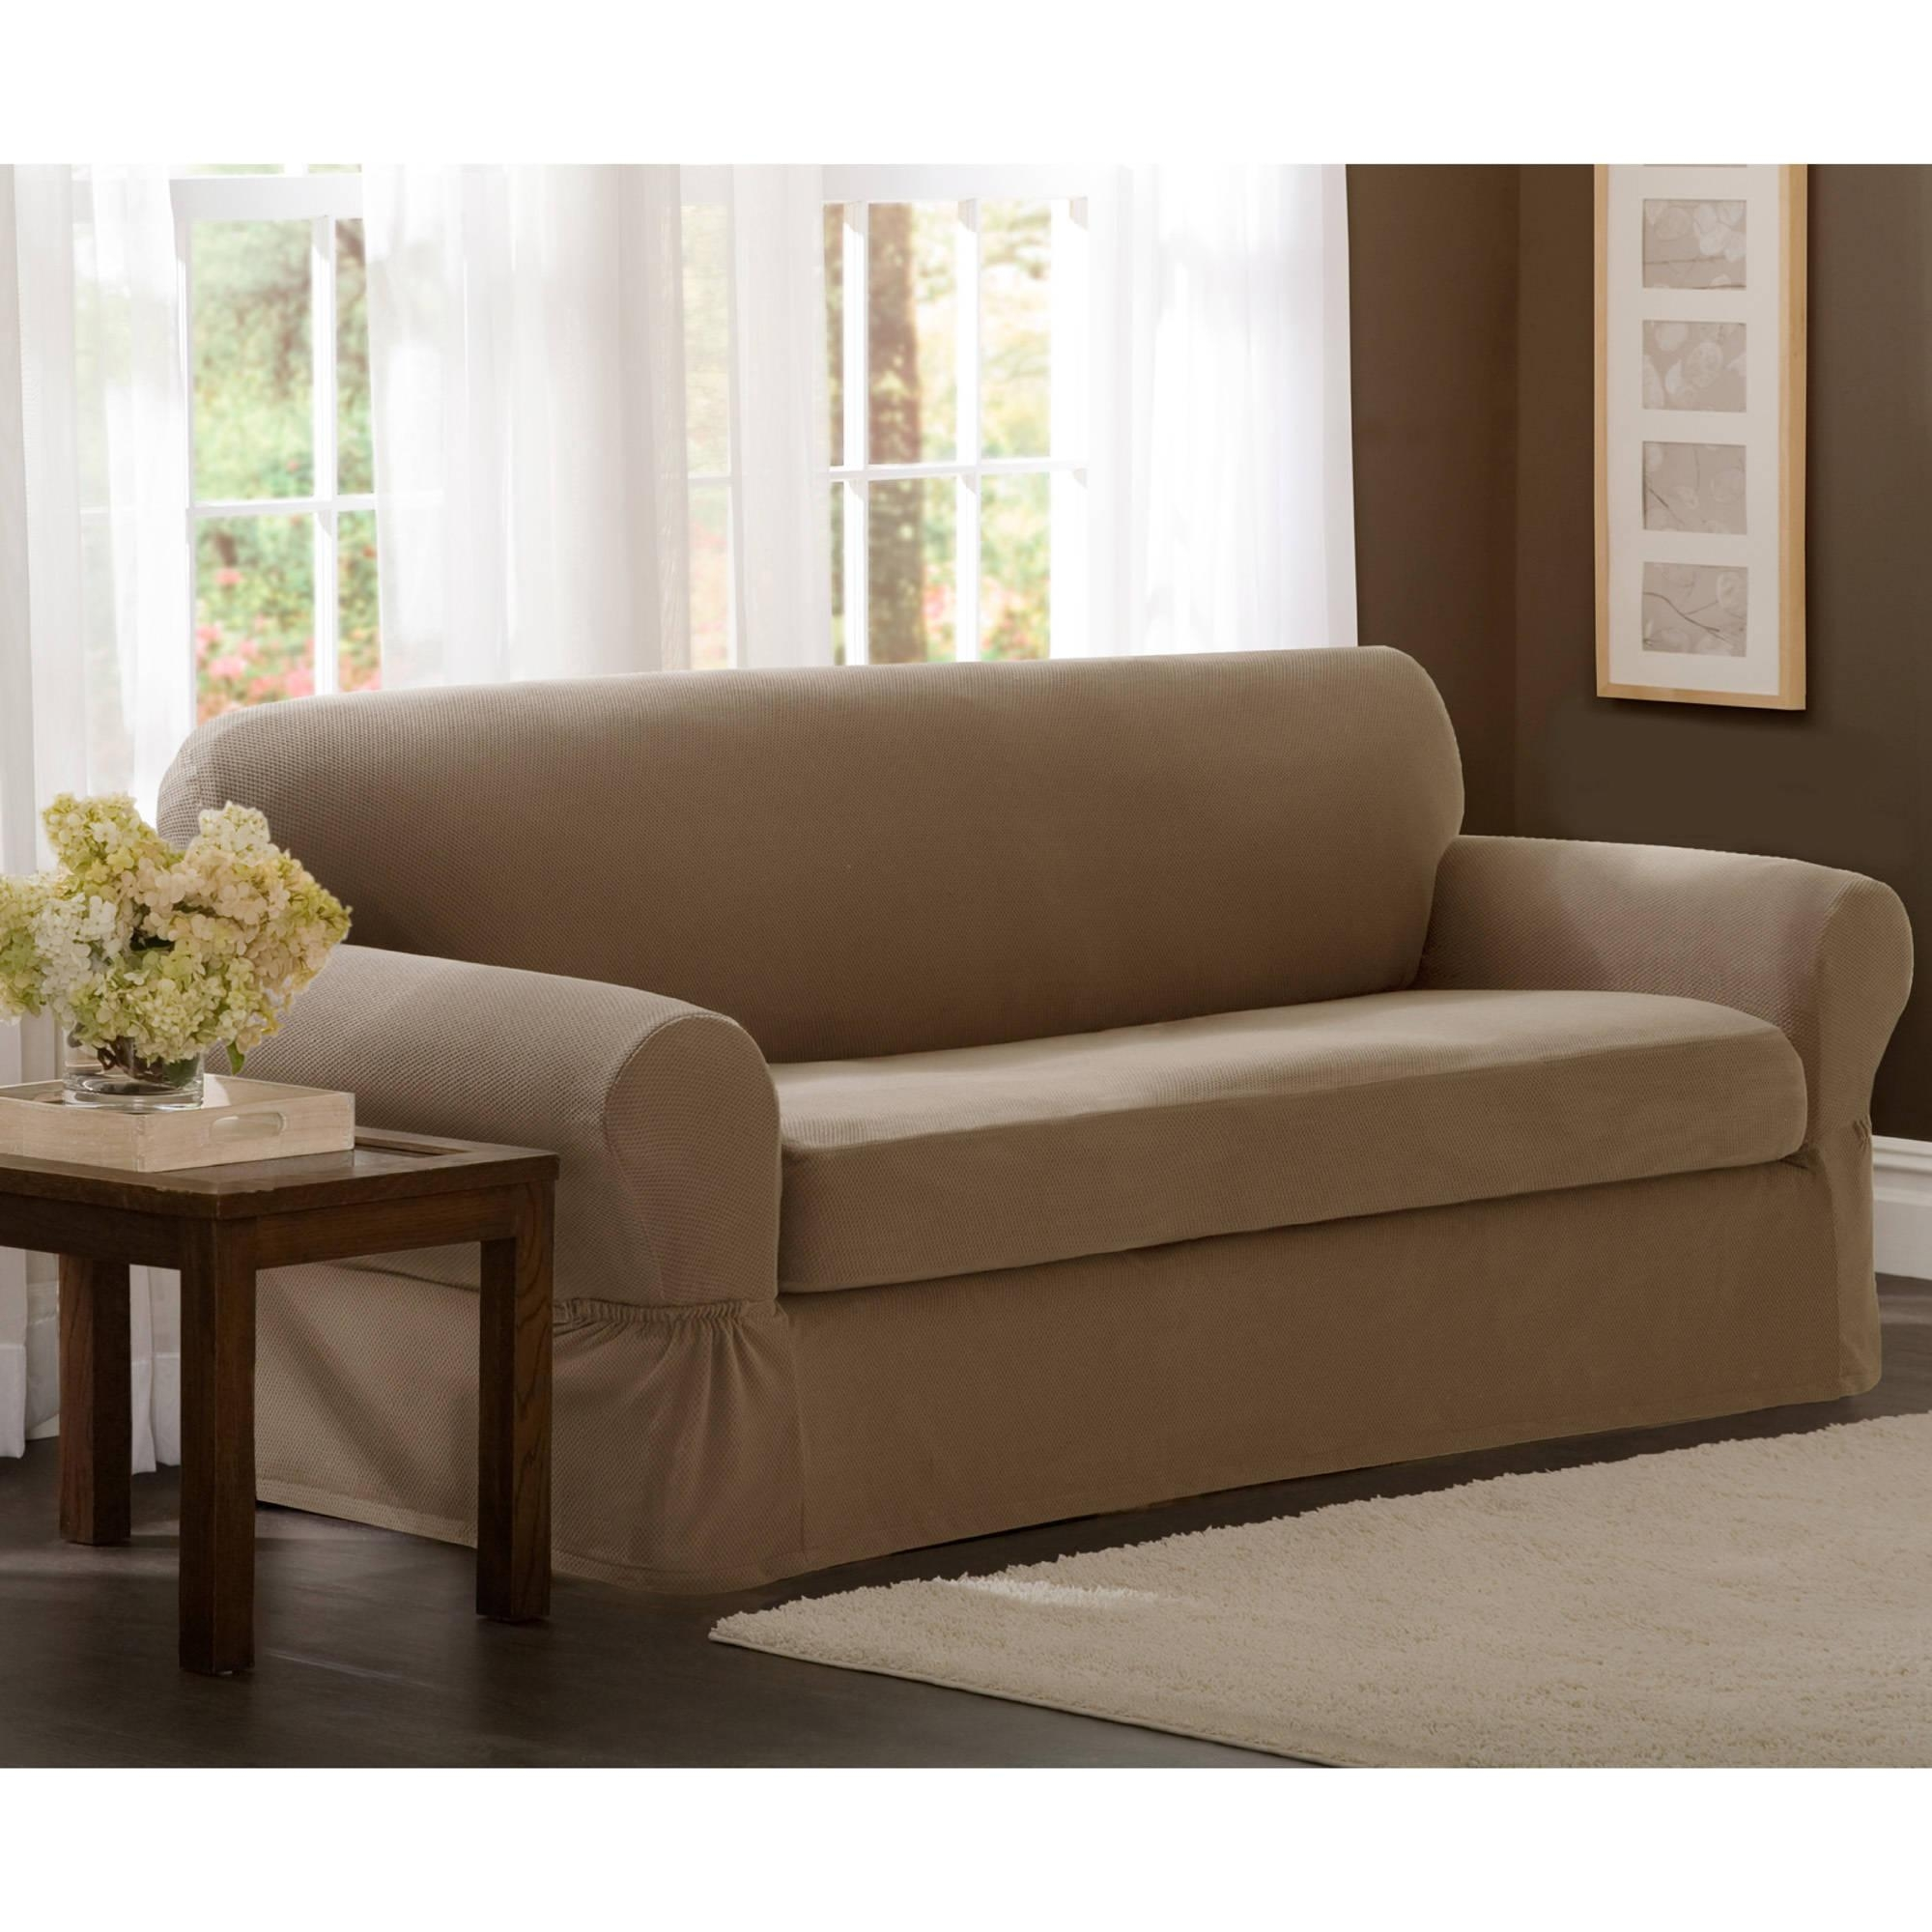 Maytex Stretch 2 Piece Sofa Slipcover – Walmart For Brown Corduroy Sofas (Image 18 of 20)